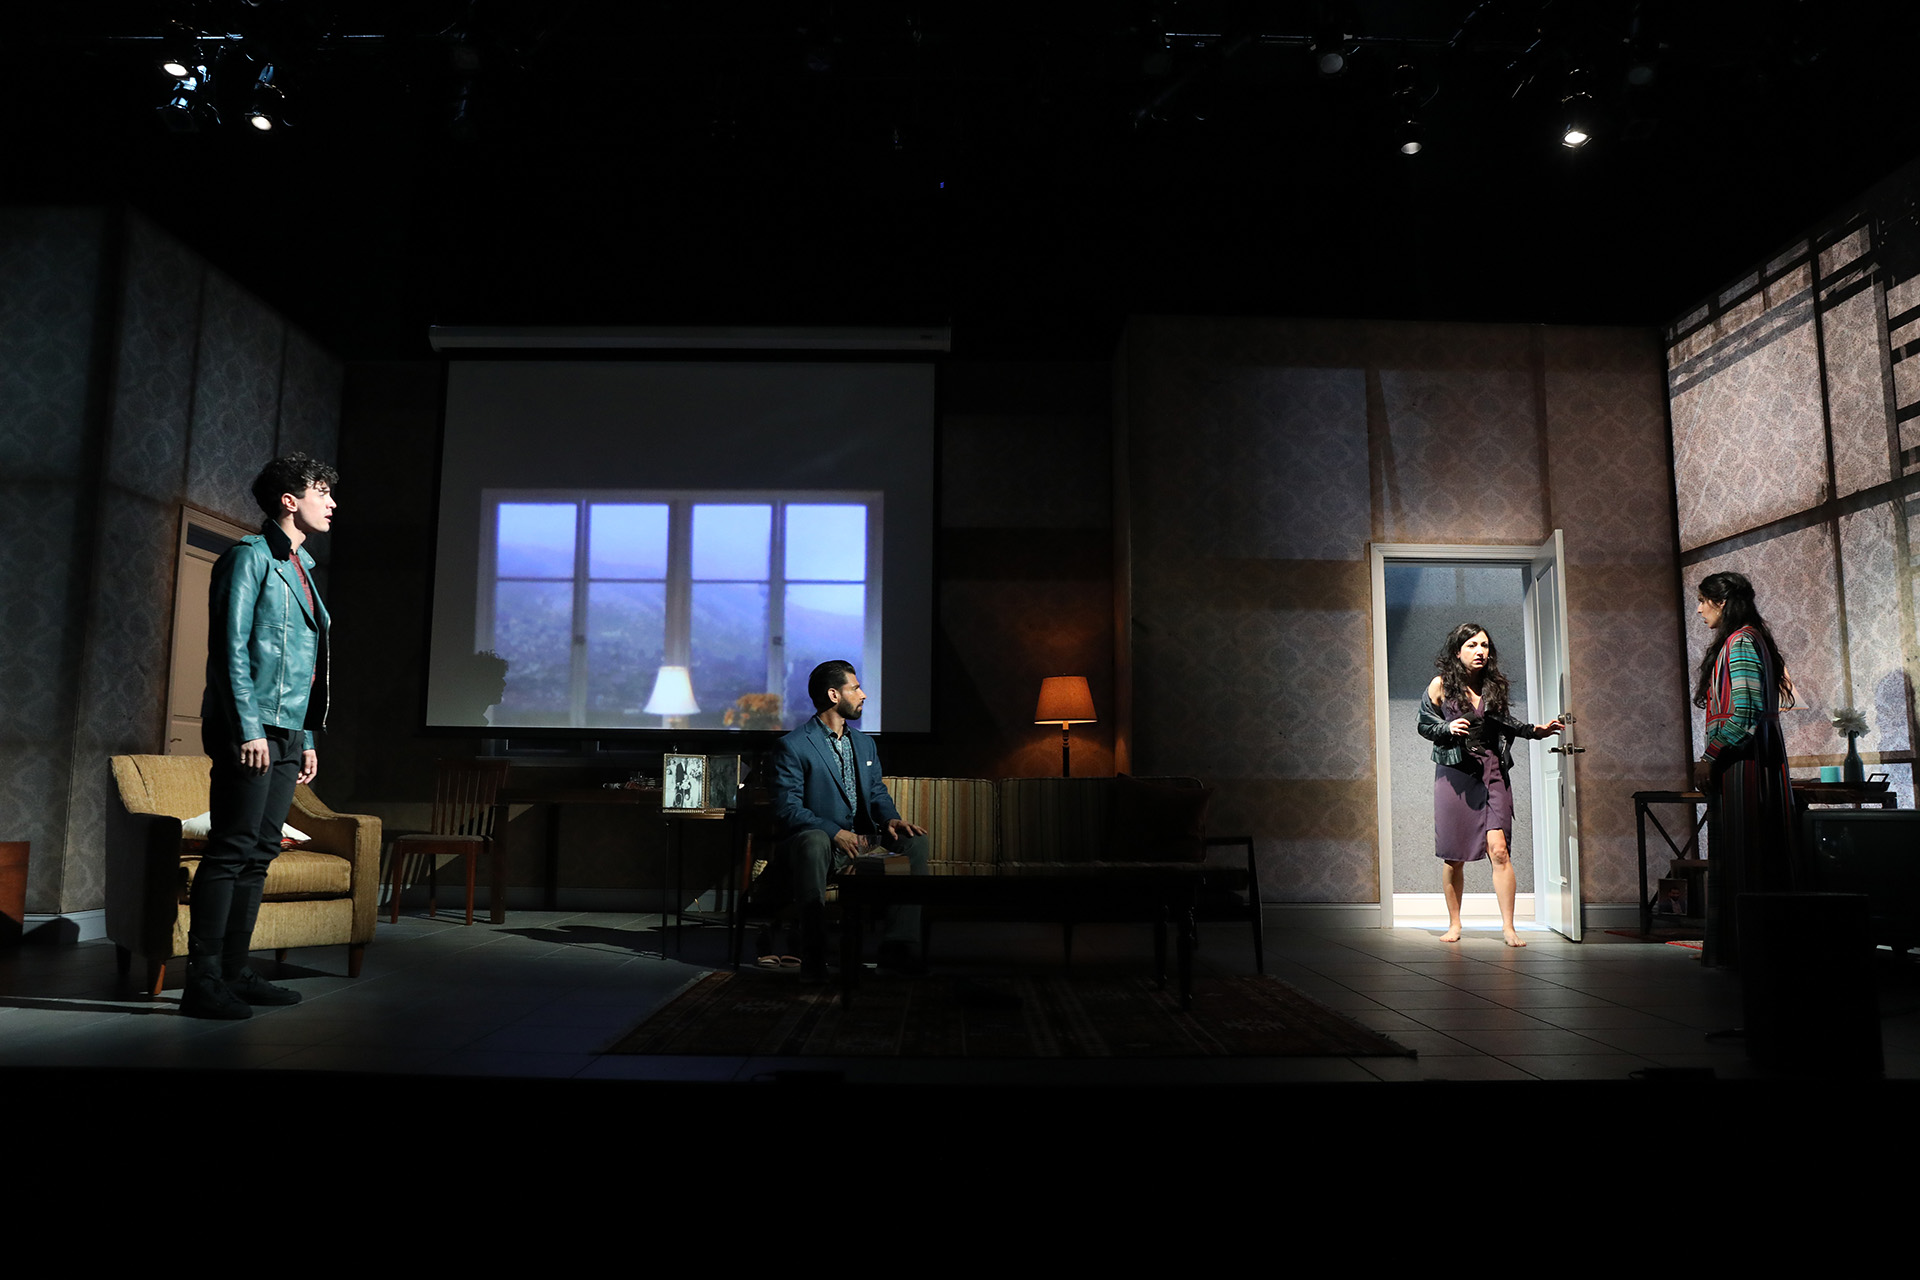 KISS by Guillermo Calderón, directed by Evan Yionoulis (Faculty), scenic design by Ao Li ('18), costume design by Cole McCarty ('18), lighting design by Erin Fleming ('18), projection design by Wladamiro A. Woyno R. ('18), Yale Repertory Theatre, 2018. Photo by Joan Marcus.